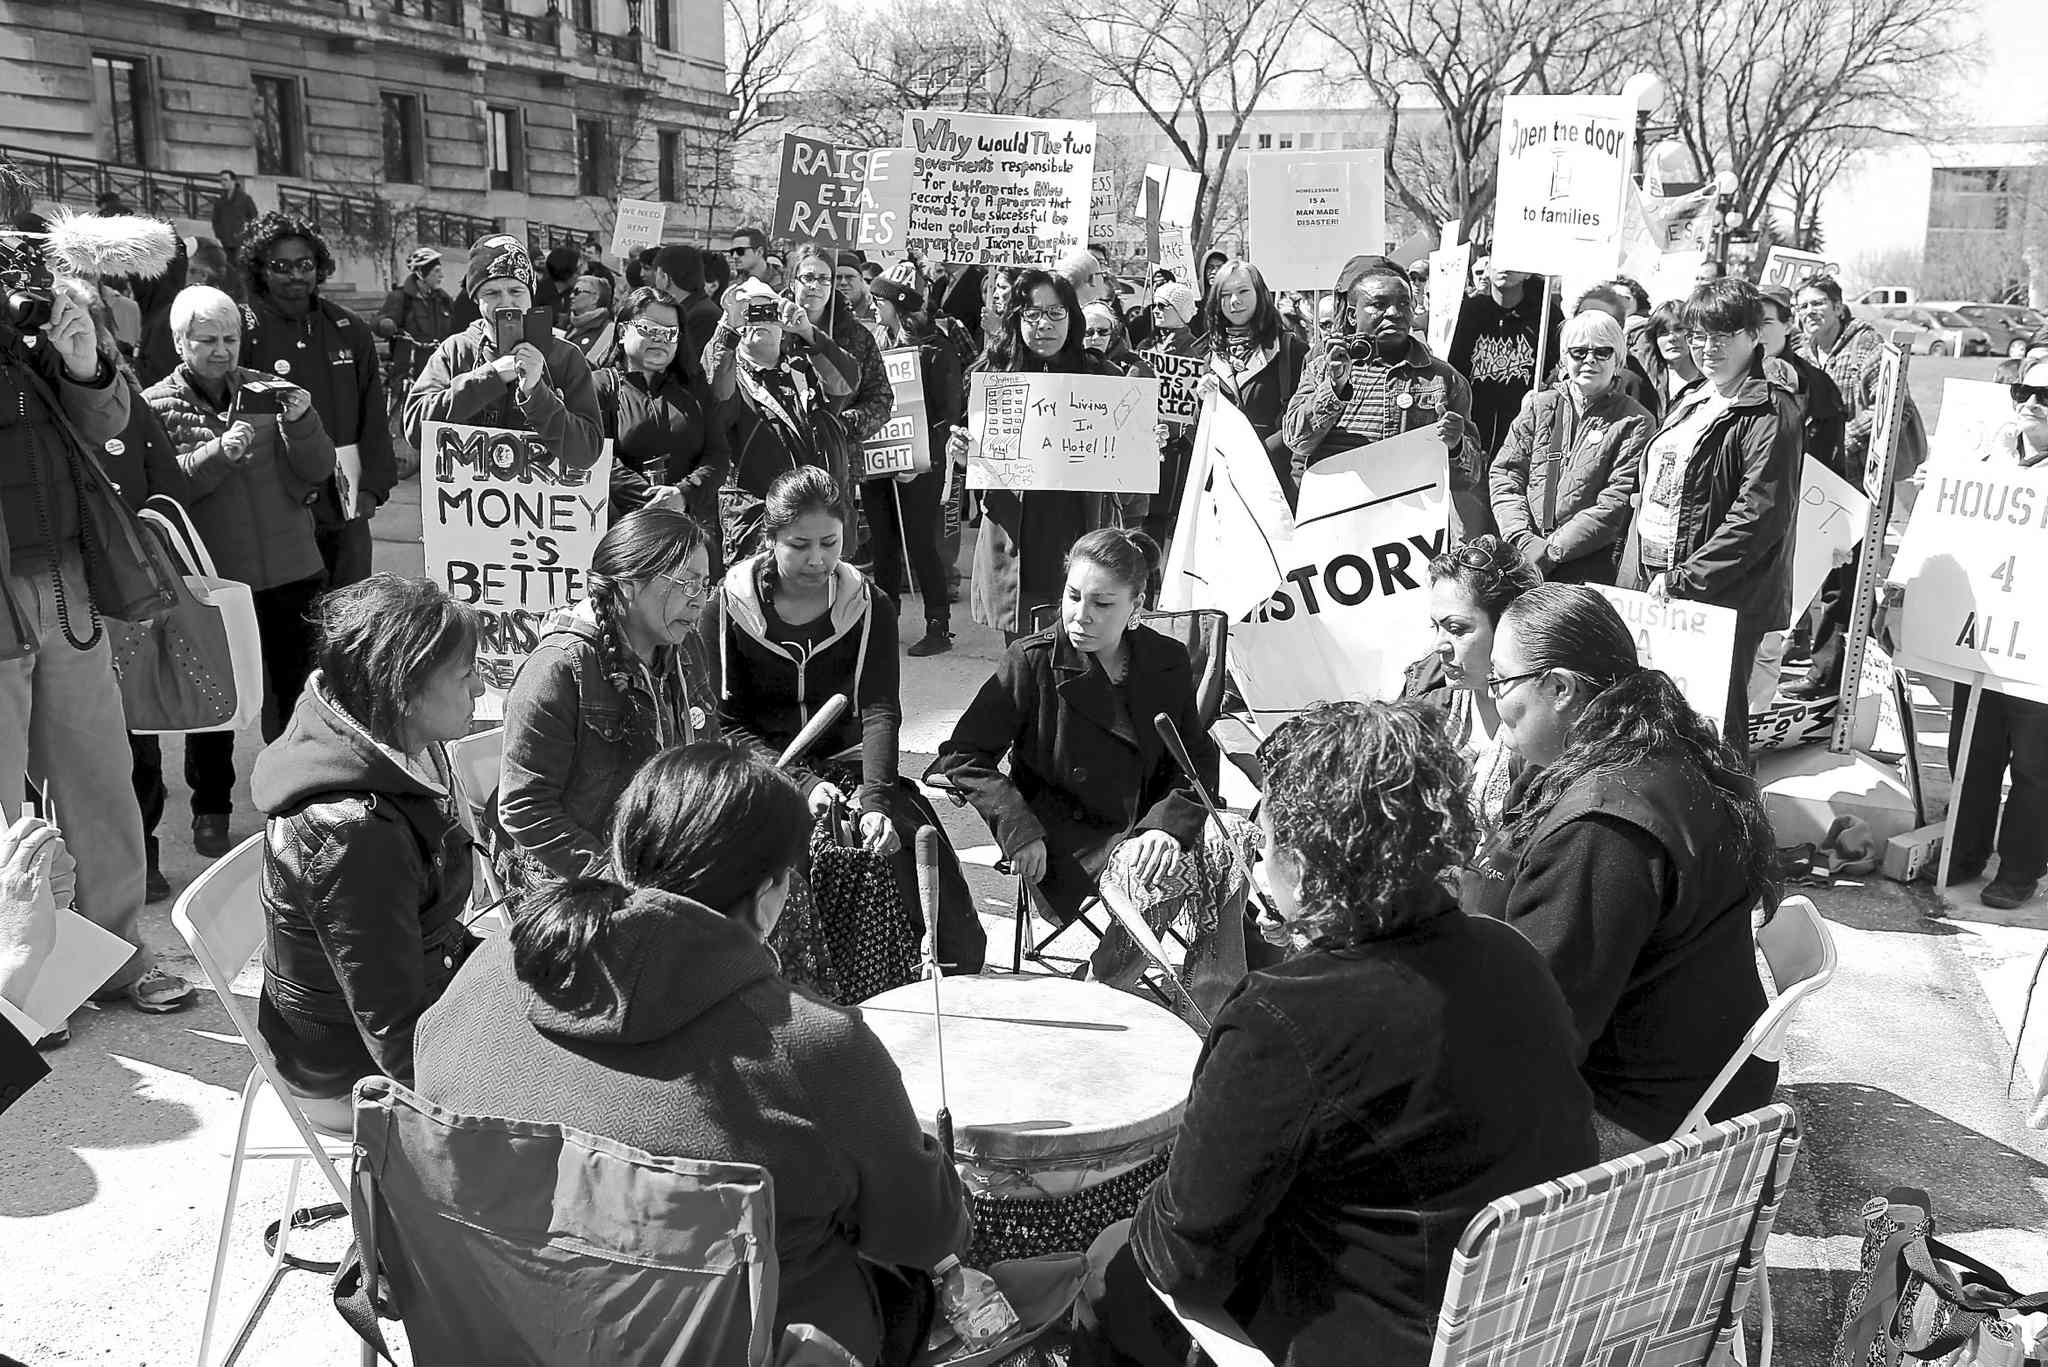 Anti-poverty  advocates gathered near the steps of the Manitoba  legislature  Thursday to demand the  Manitoba  government make poverty-reduction measures a priority in its 2015 provincial budget.